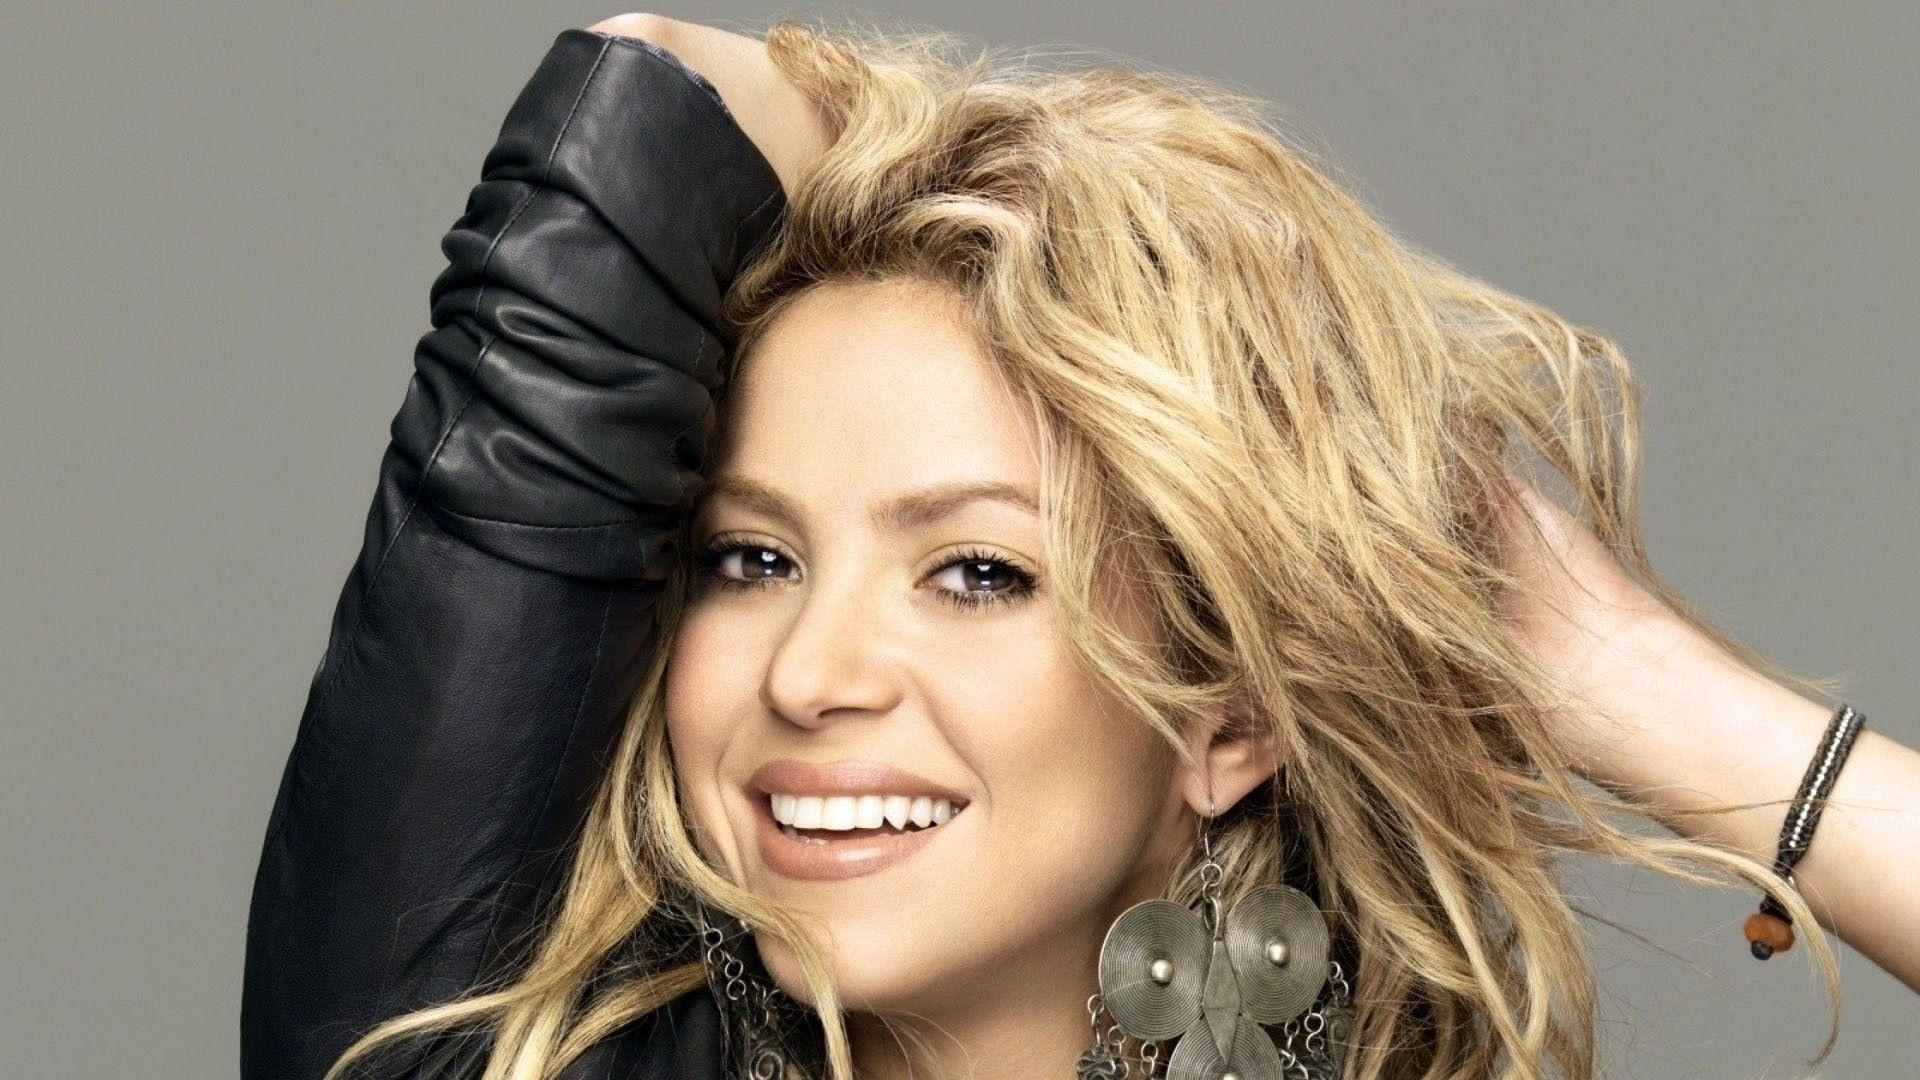 16 Beautiful Shakira Hd Wallpapers